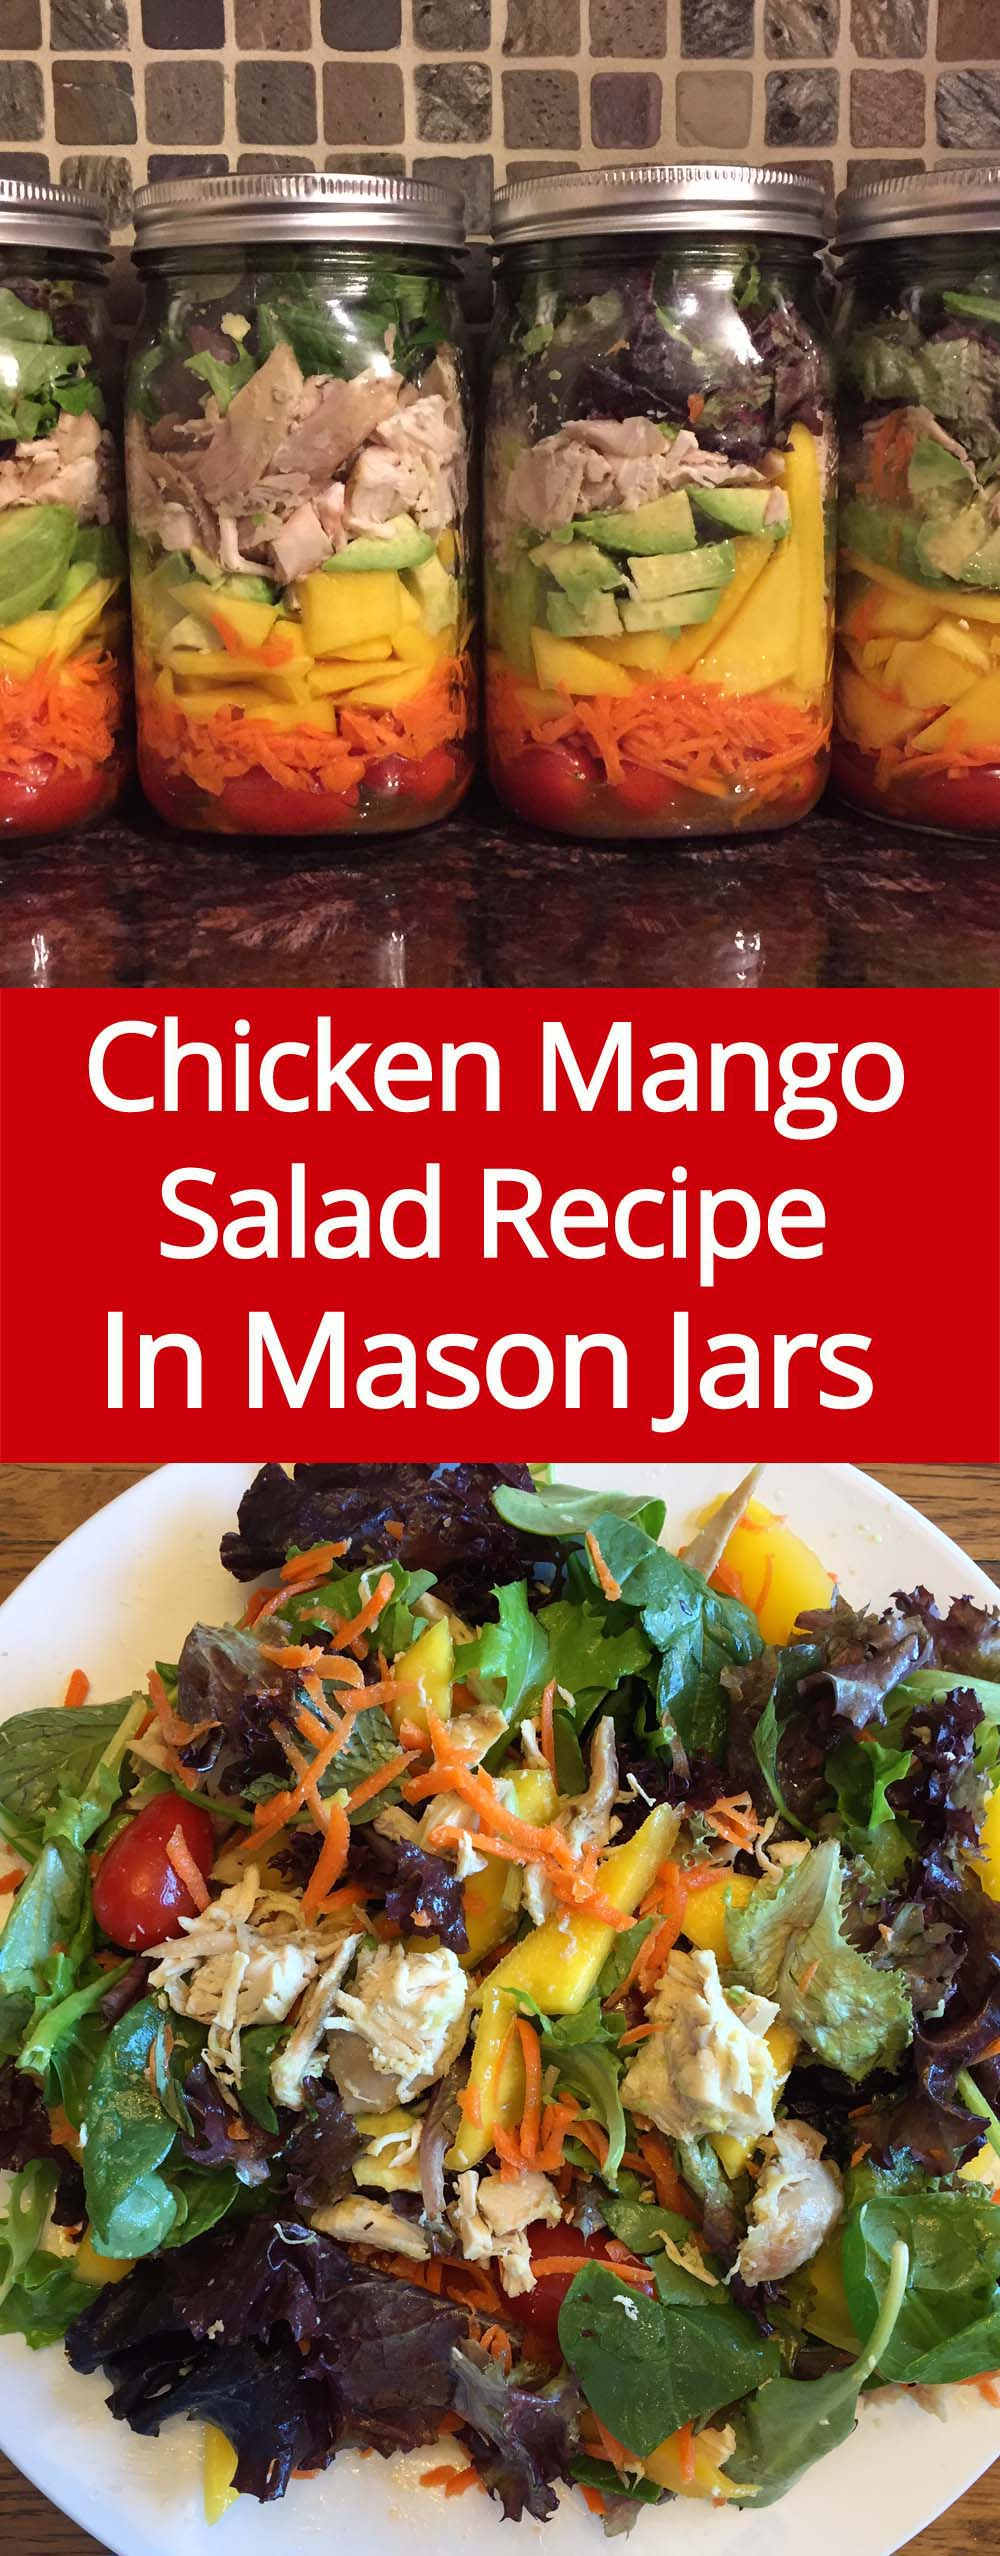 Chicken Mango Mason Jar Salad Recipe - these mason jar salads stay fresh for 5 days!  Genius idea, must try this!